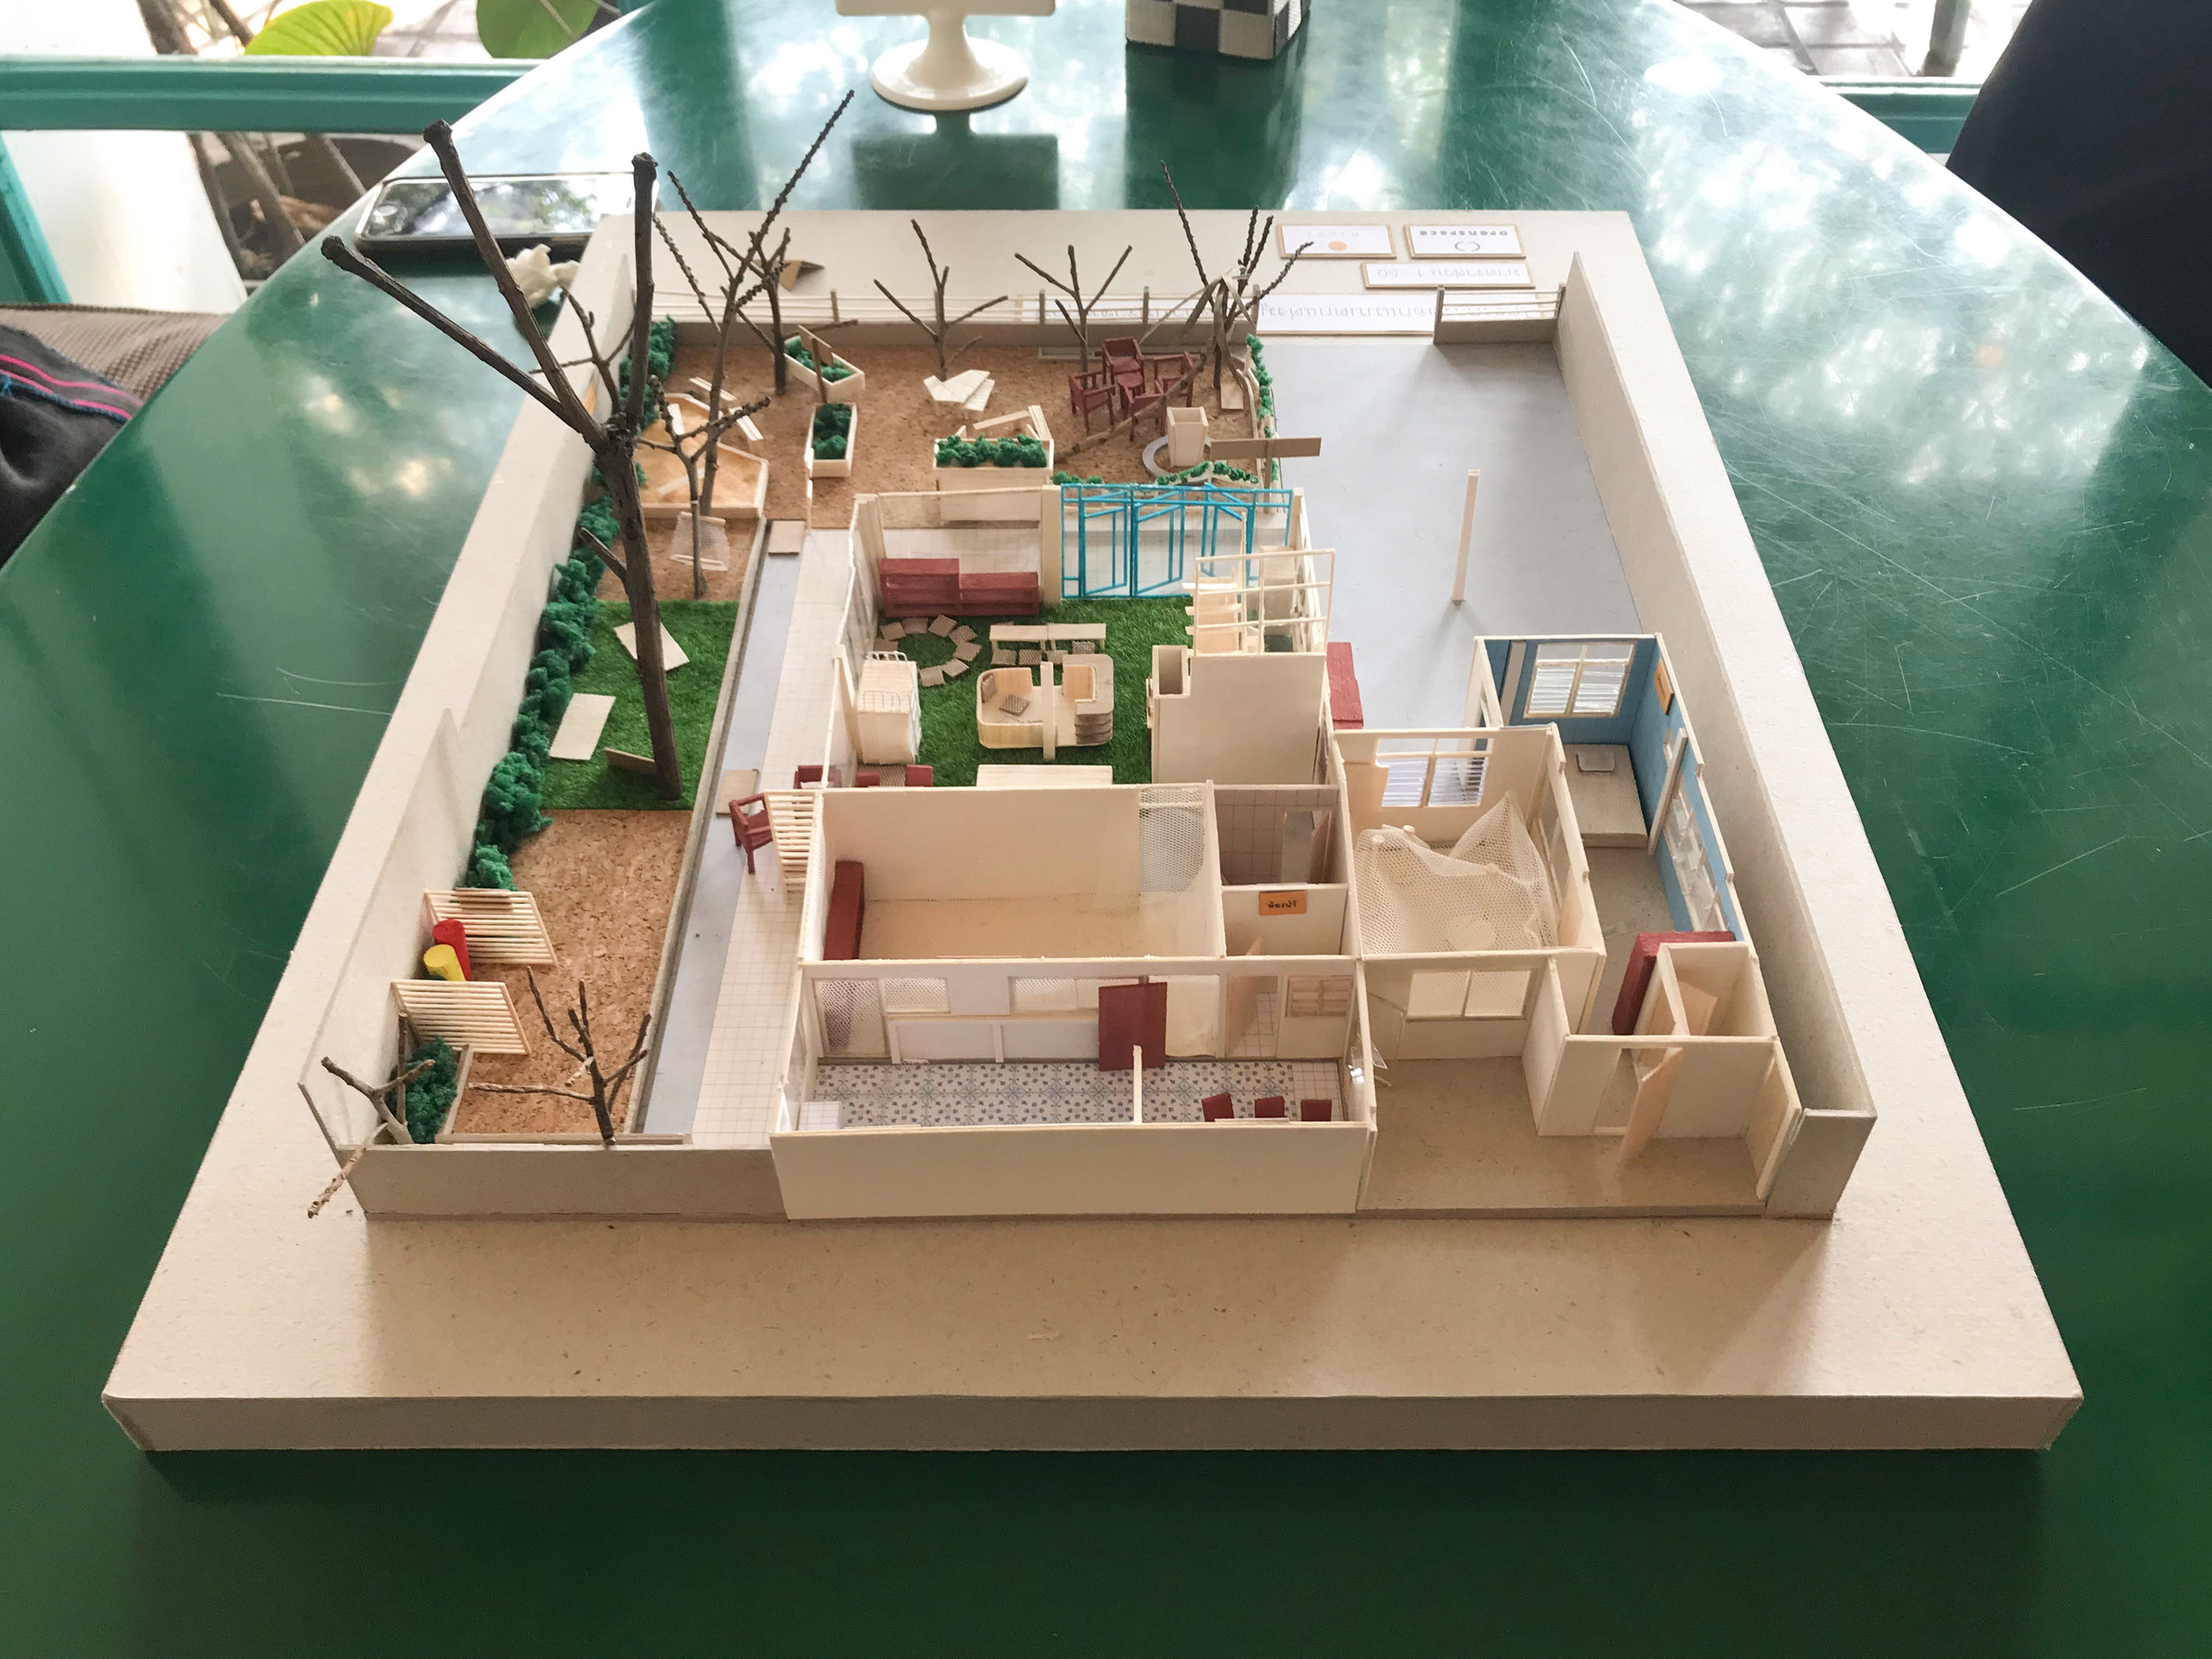 Bluedoor Creative Space: Architectural model